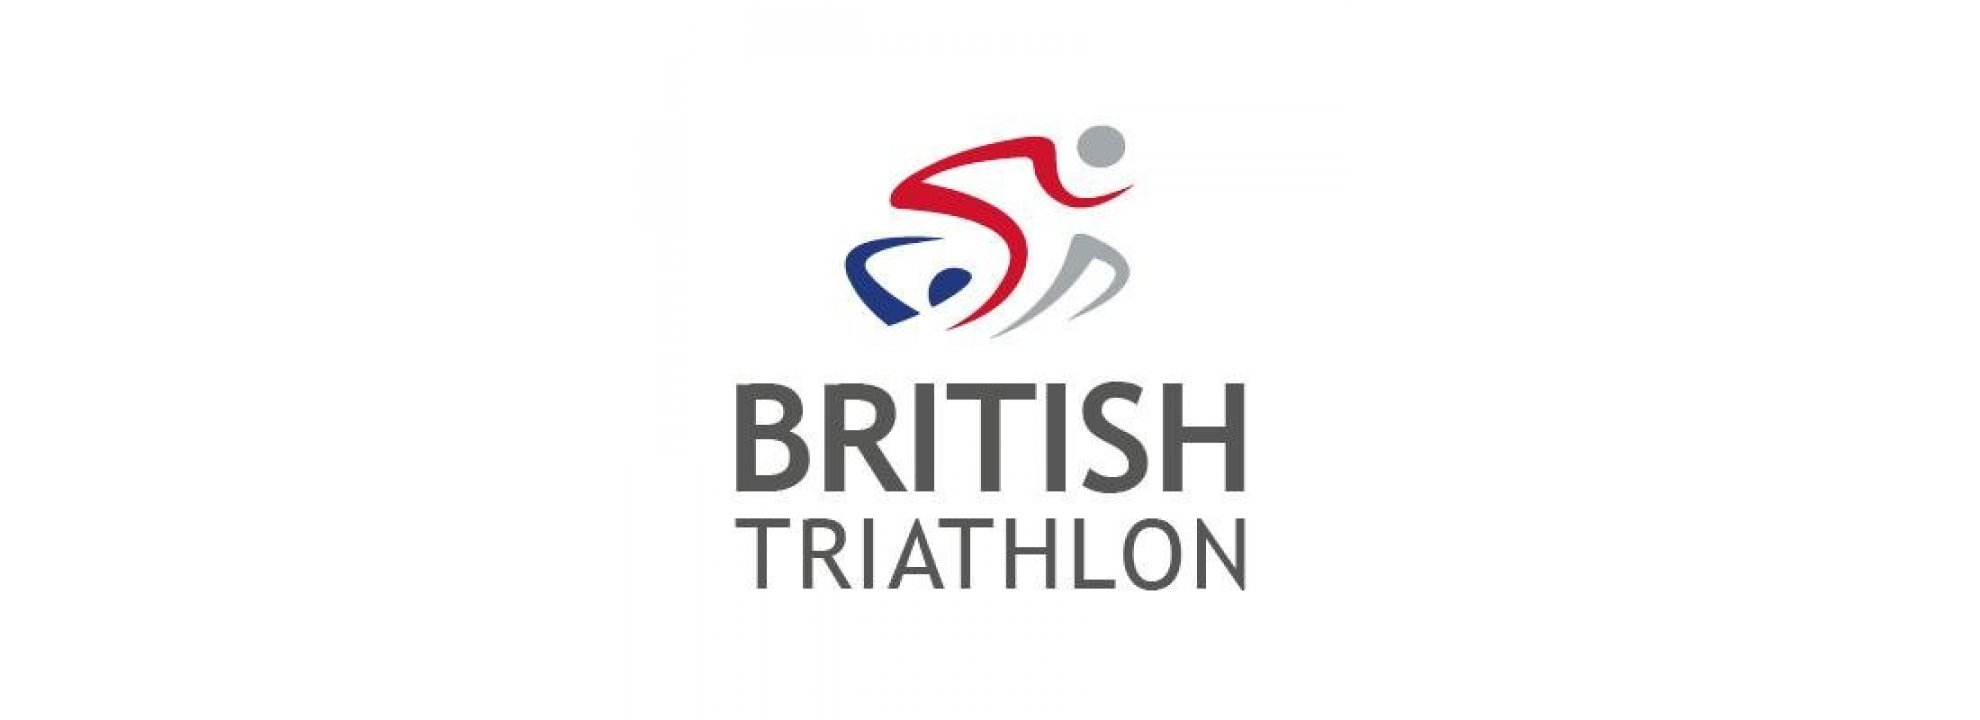 British Triathlon - Event Volunteer Banner